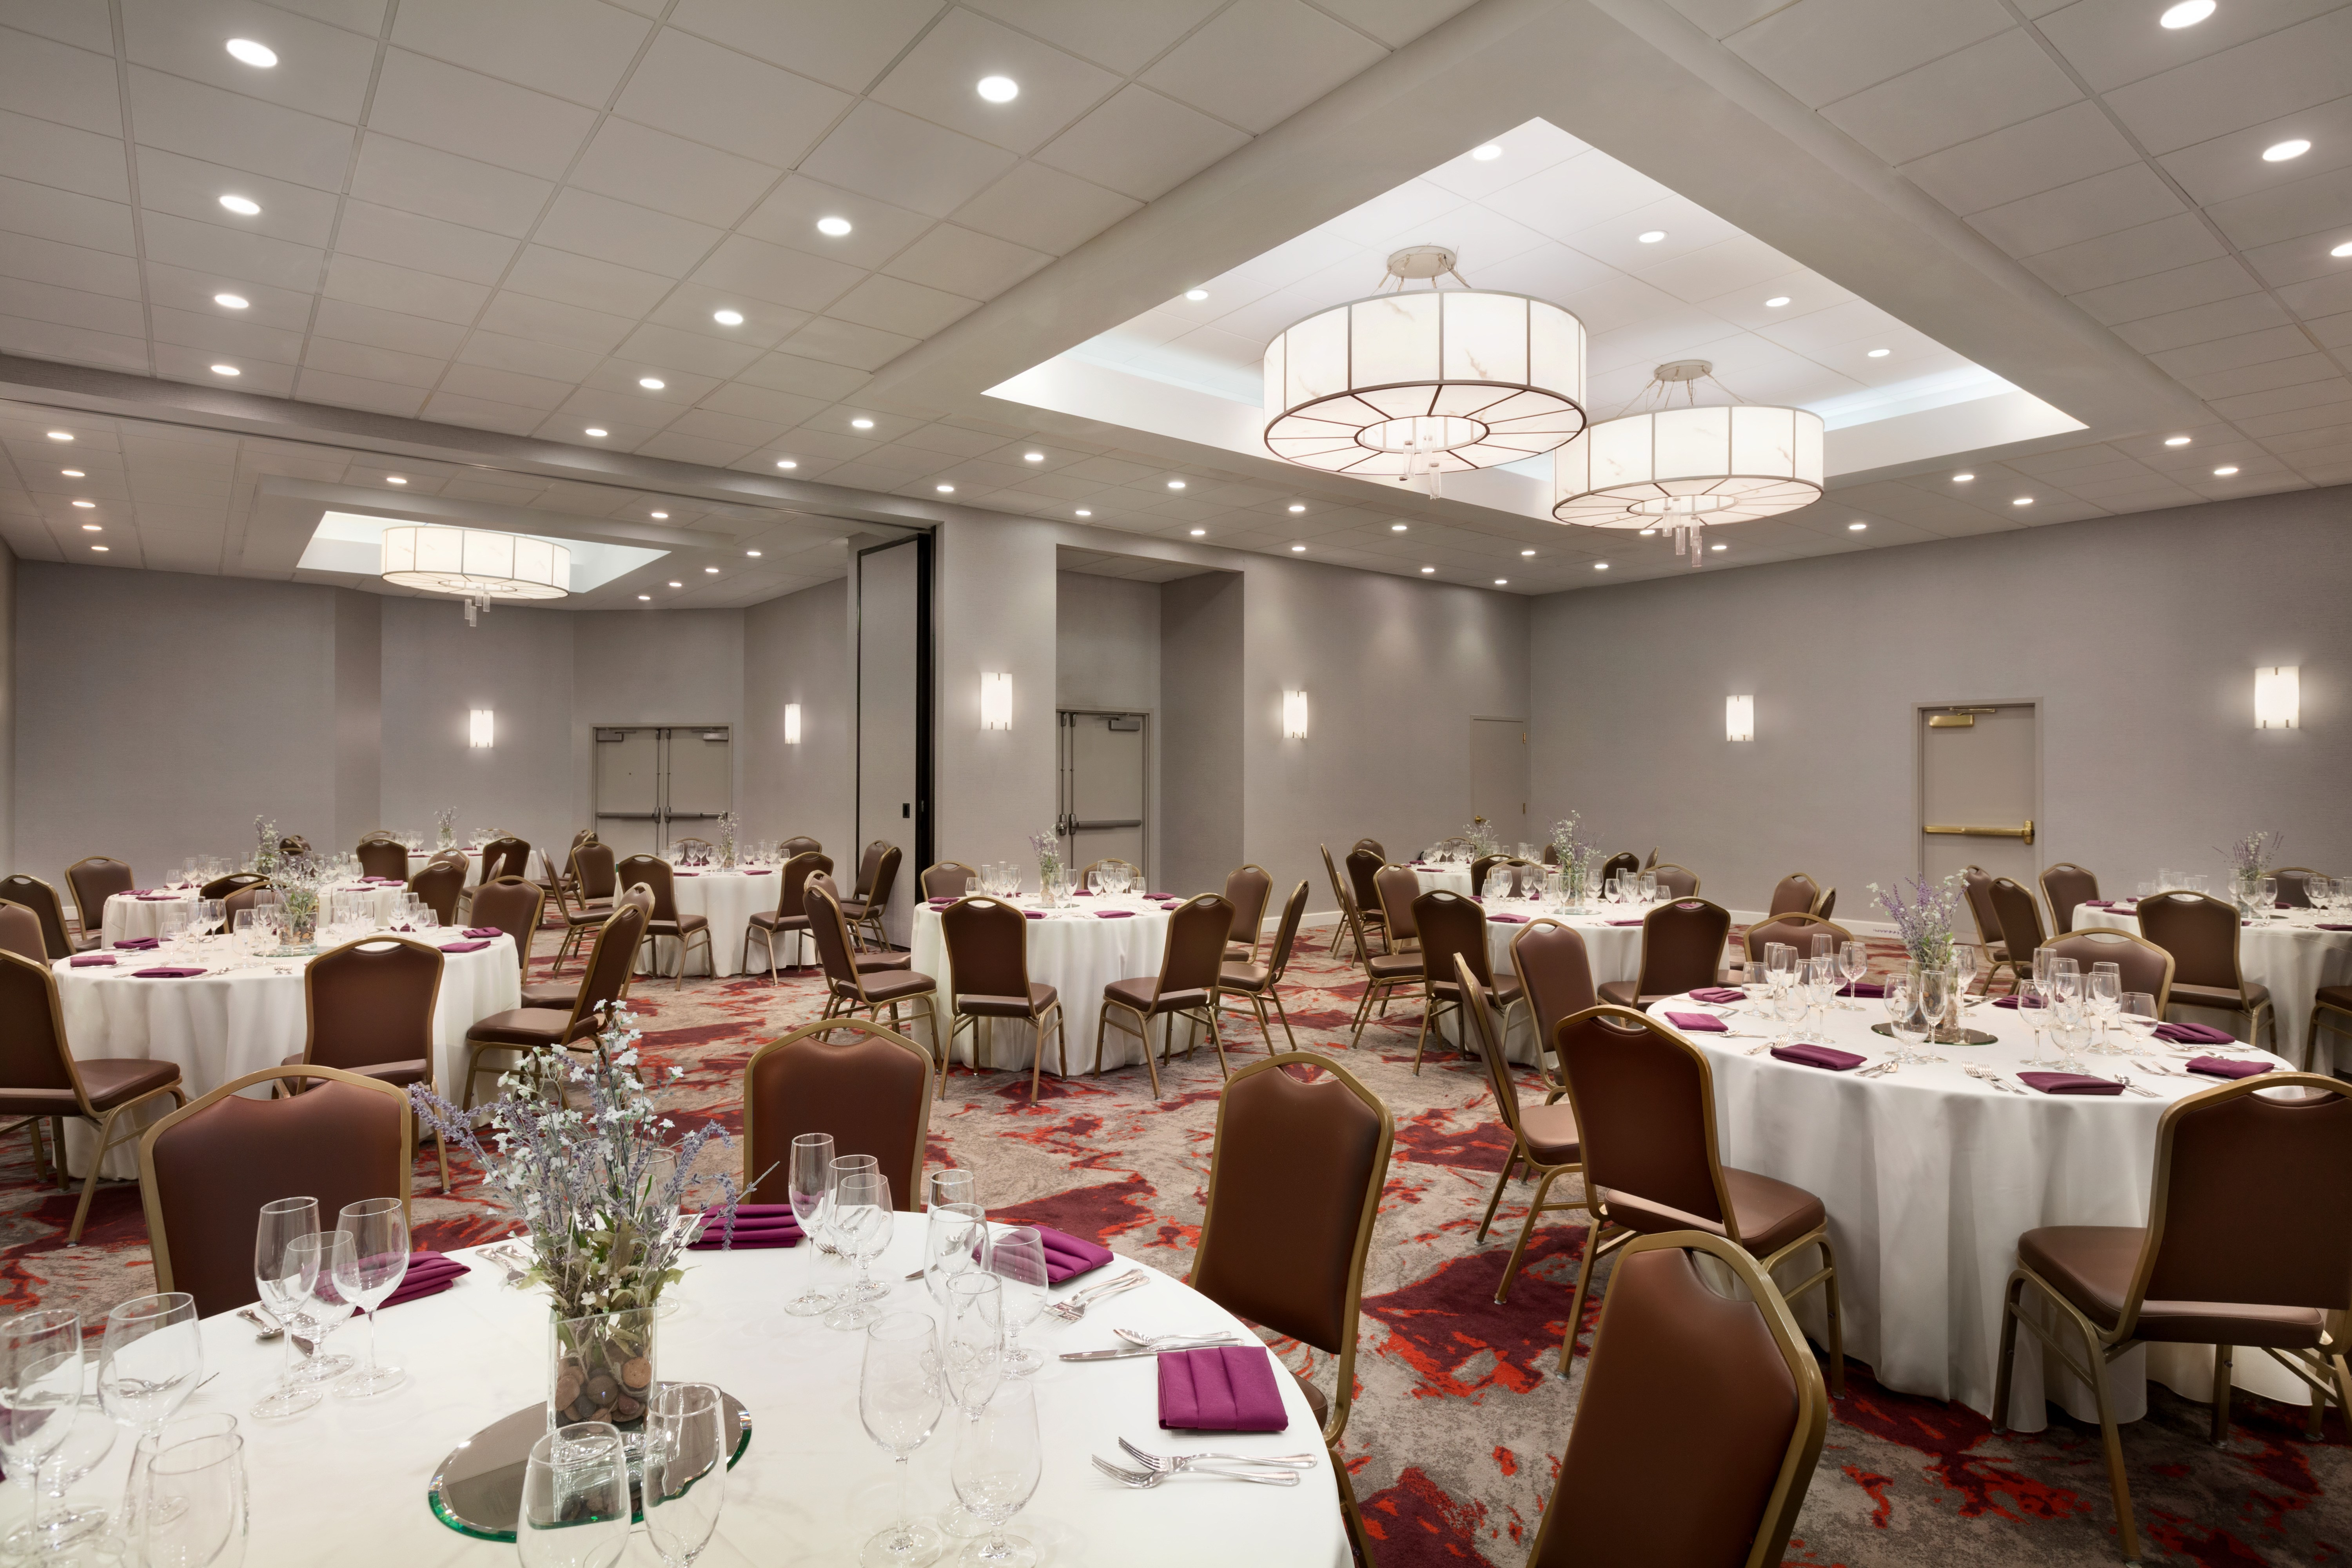 Champagne Banquet Room